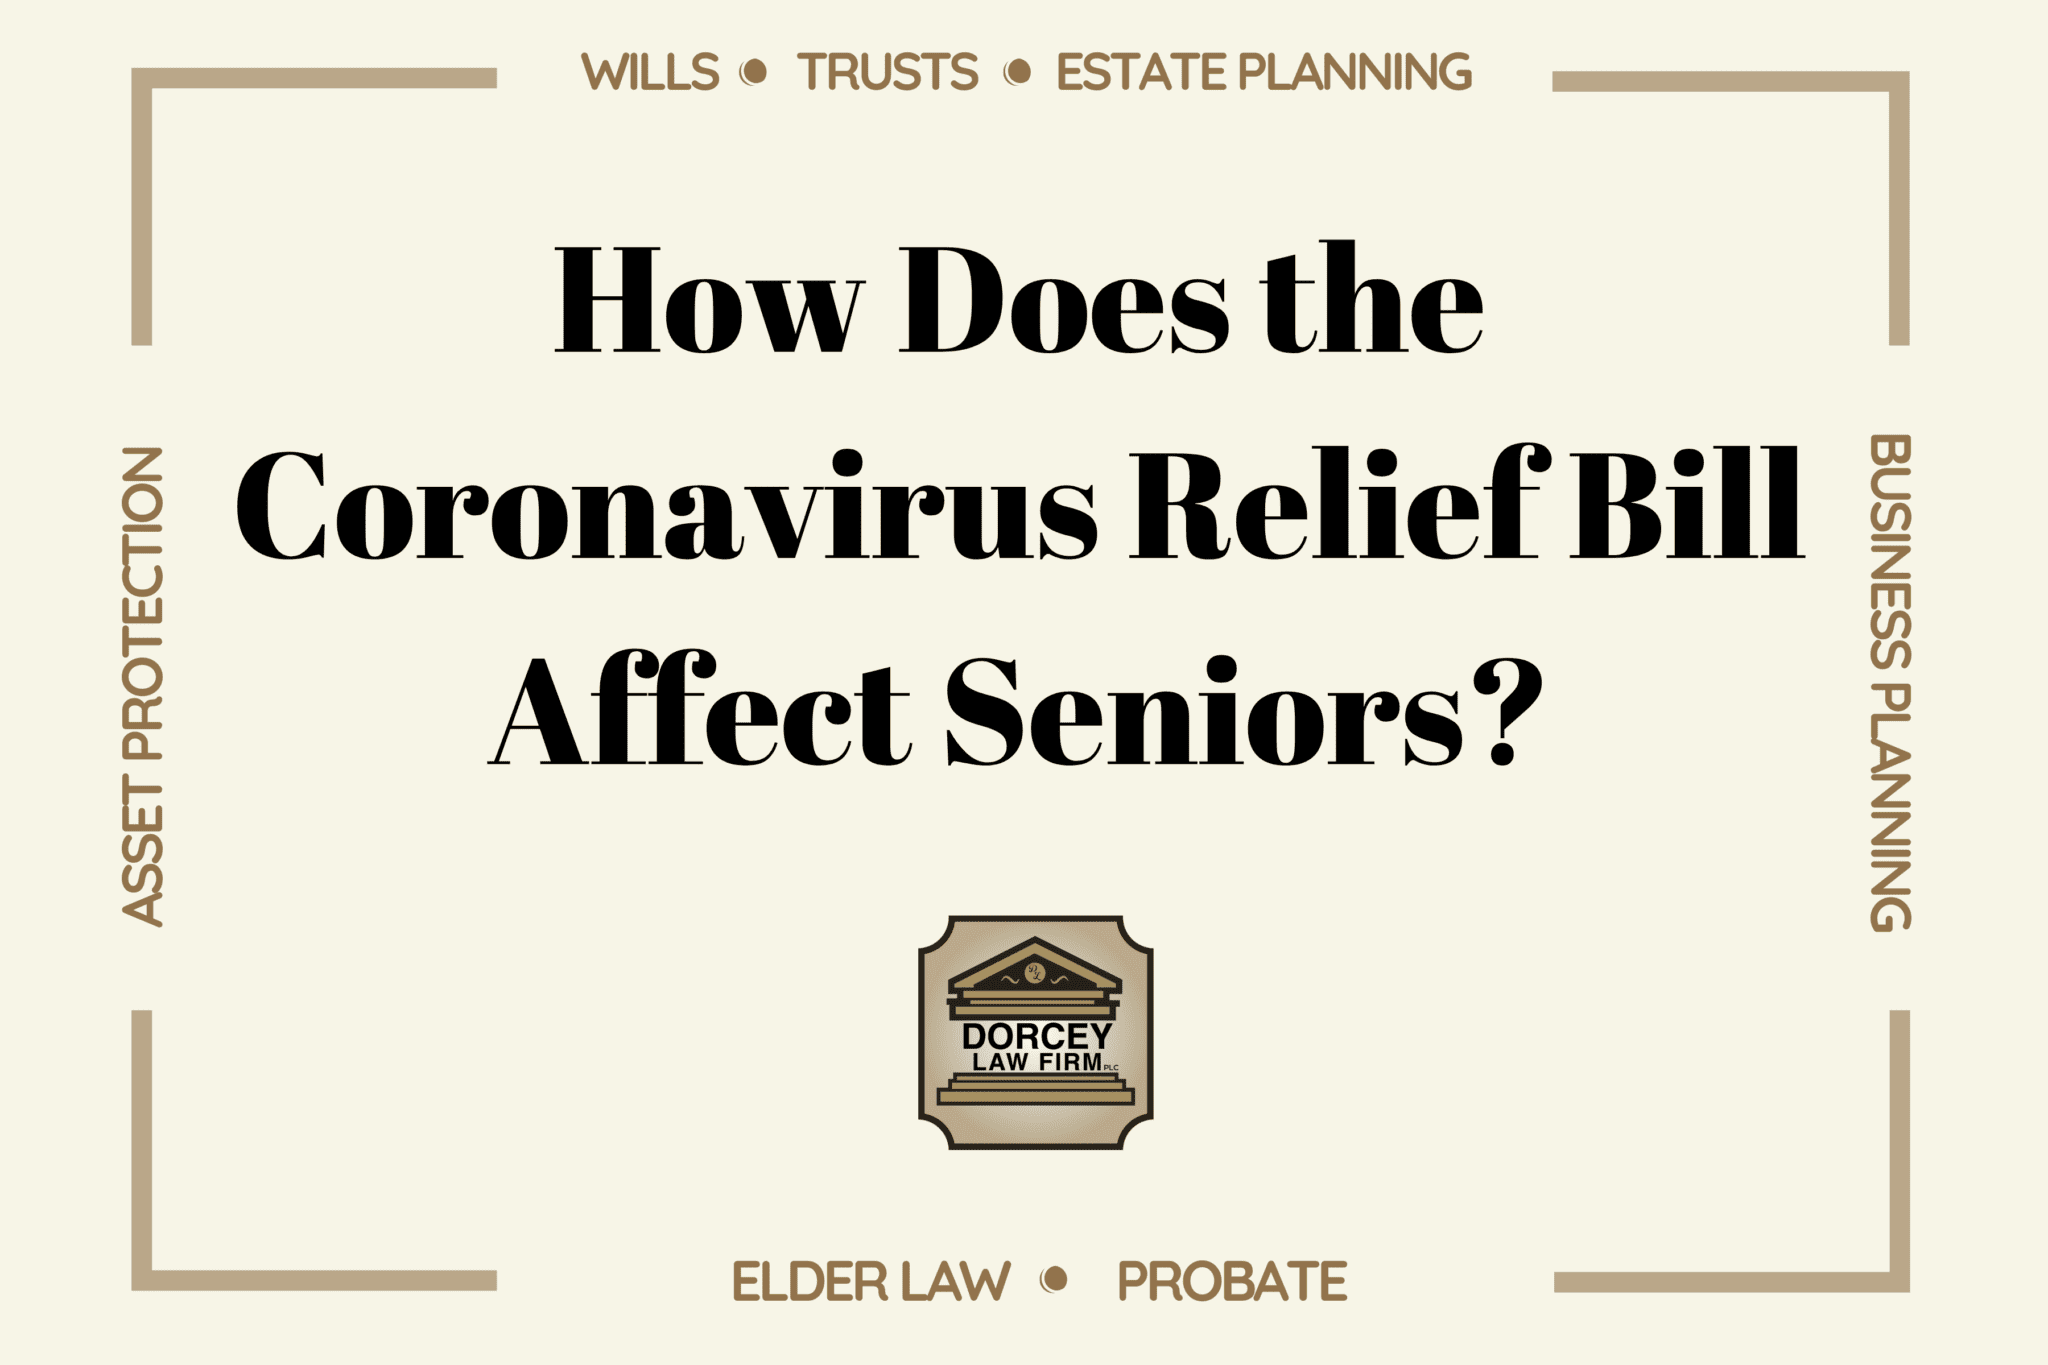 How Does the Coronavirus Relief Bill Affect Seniors?